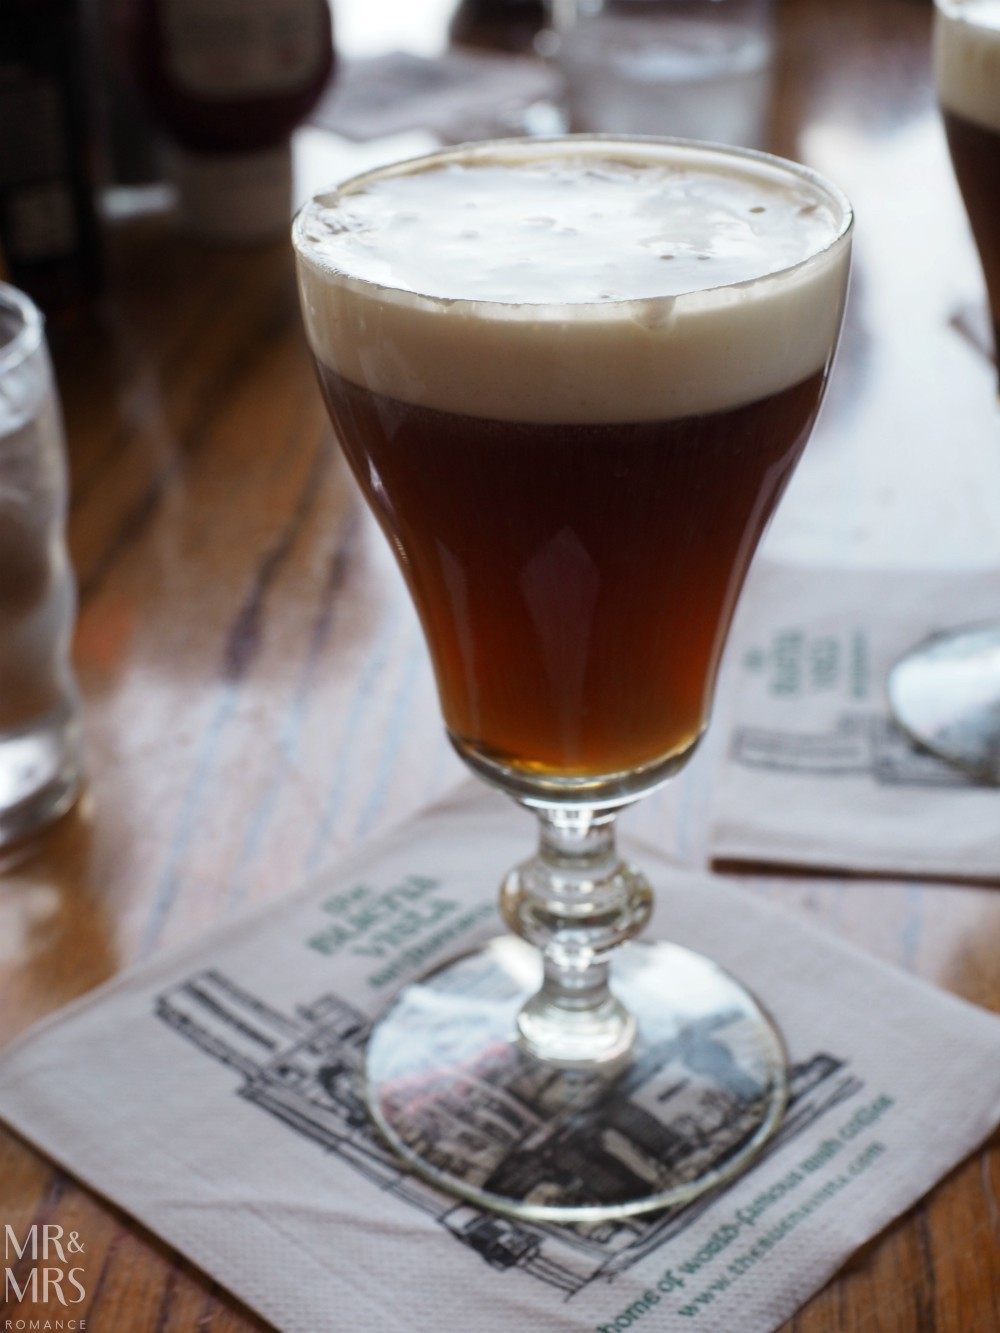 Where to drink in San Francisco - Buena Vista Cafe - MMR